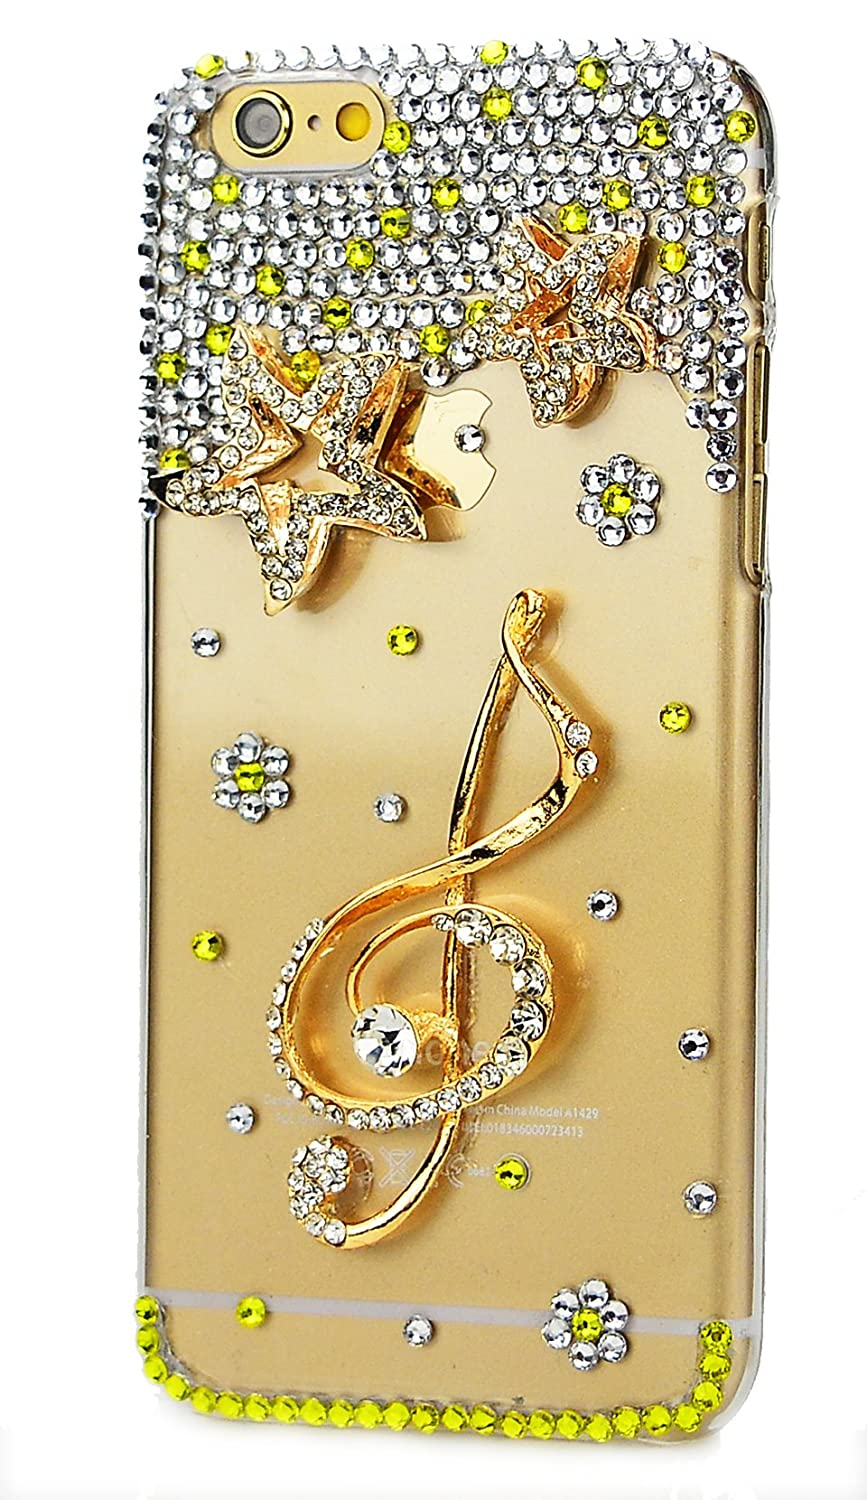 STENES Google Pixel Case - [Luxurious Series] 3D Handmade Shiny Crystal Sparkle Bling Case With Retro Bowknot Anti Dust Plug - Stars Music Symbol/Yellow